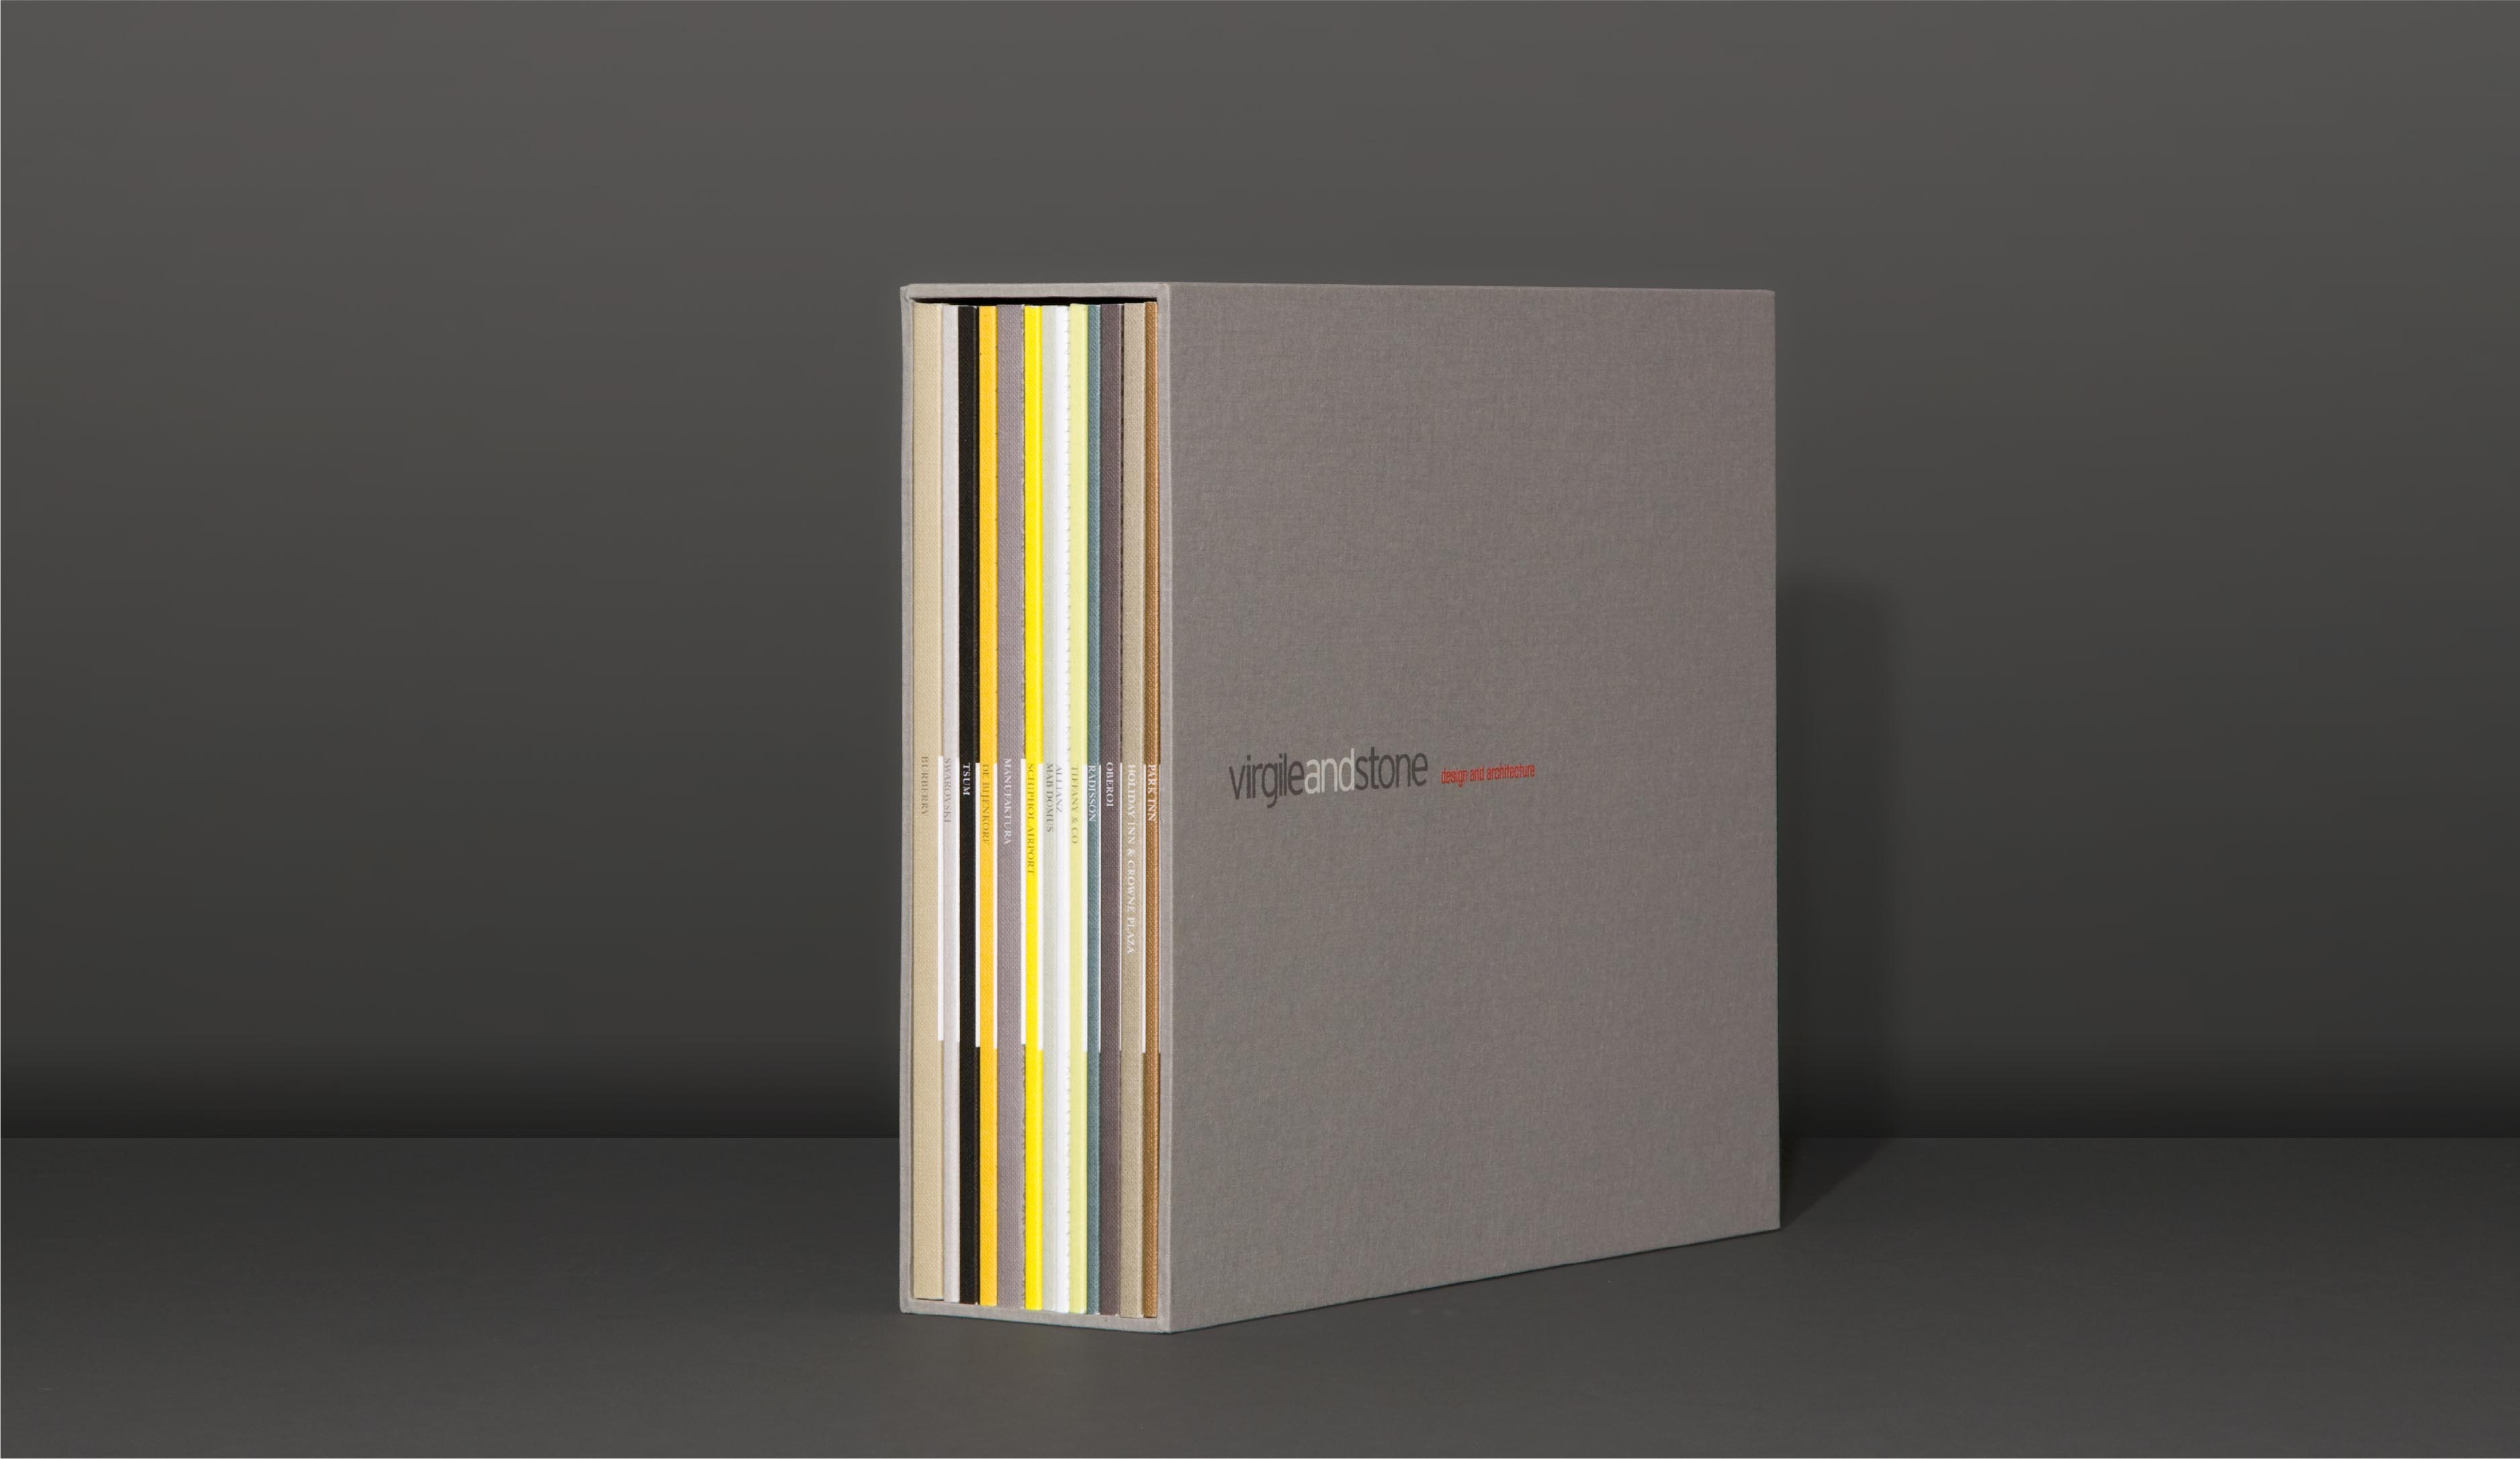 Virgile and Stone promotional book design